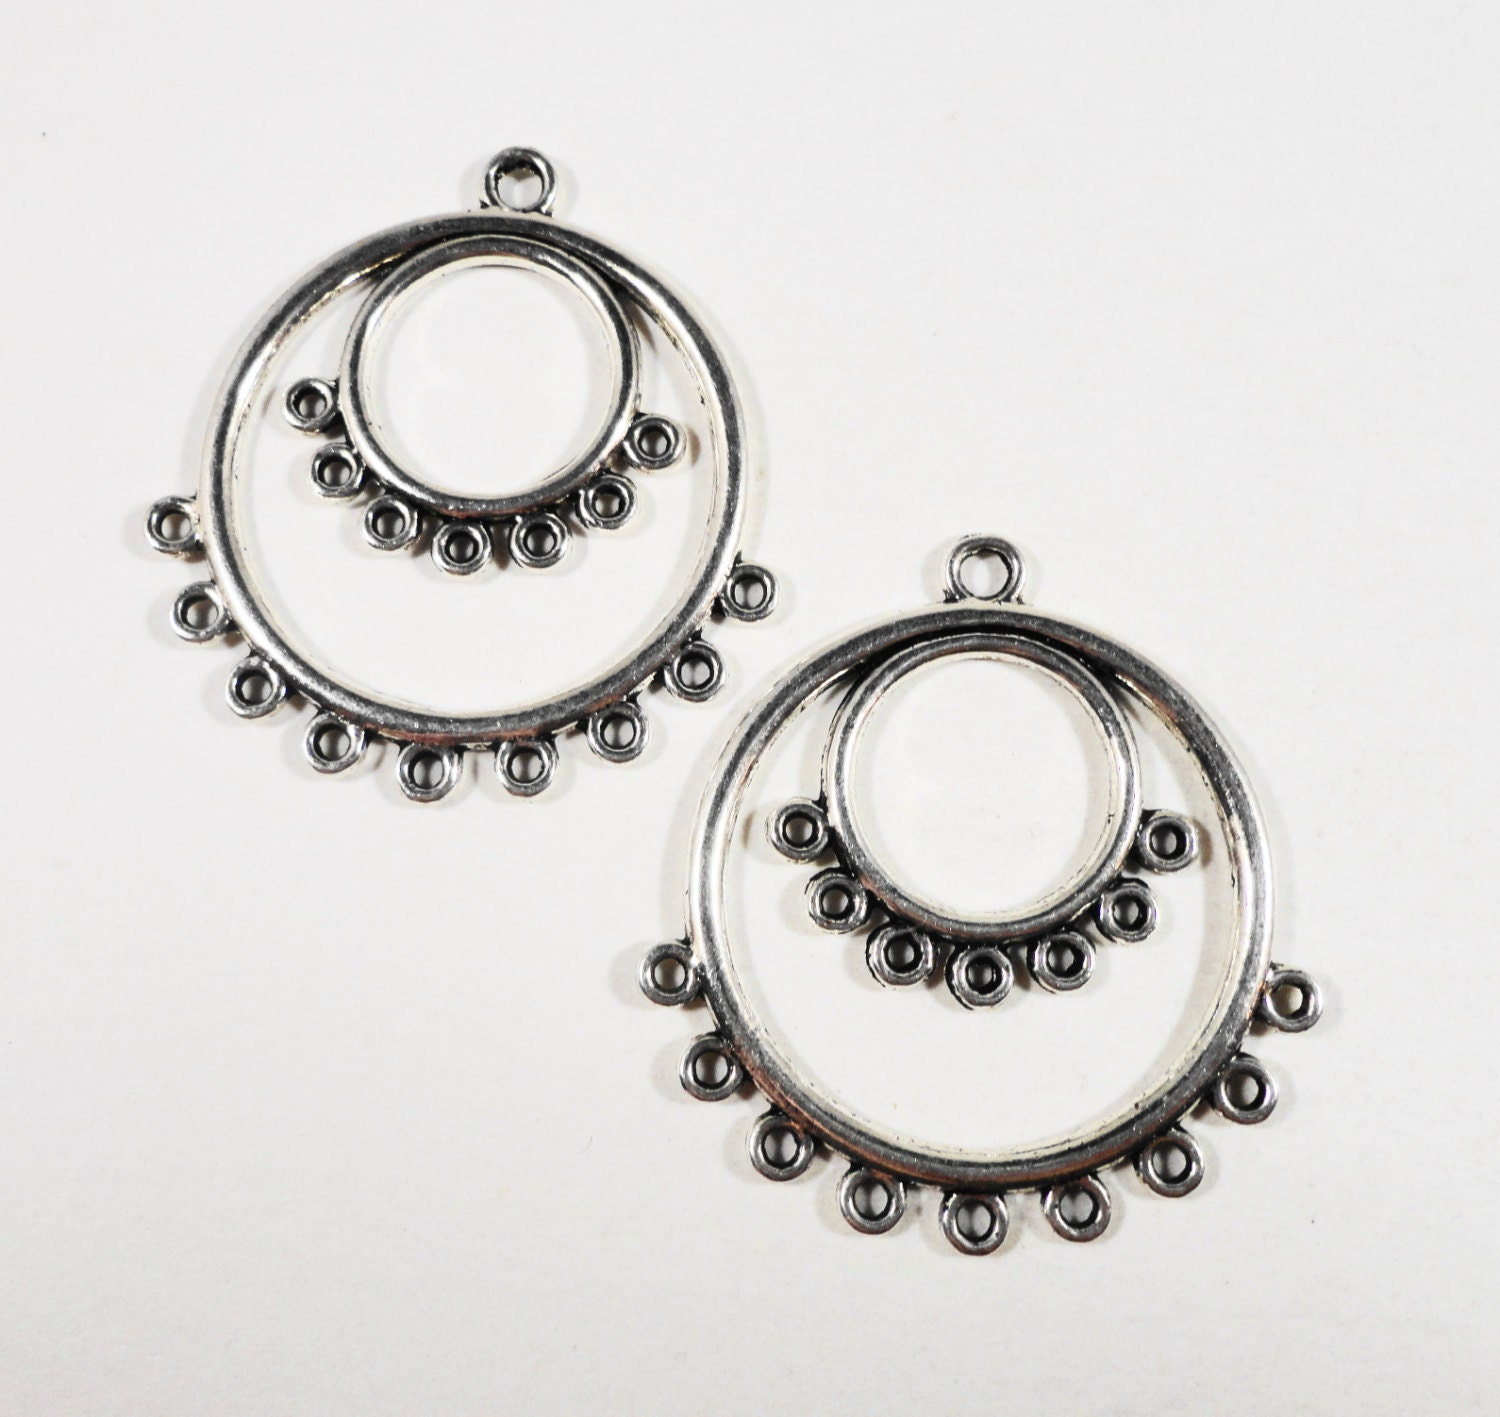 Hoop earring connectors 36x34mm antique silver chandelier earring hoop earring connectors 36x34mm antique silver chandelier earring findings connector findings connector pendants jewelry findings 4pcs mozeypictures Image collections